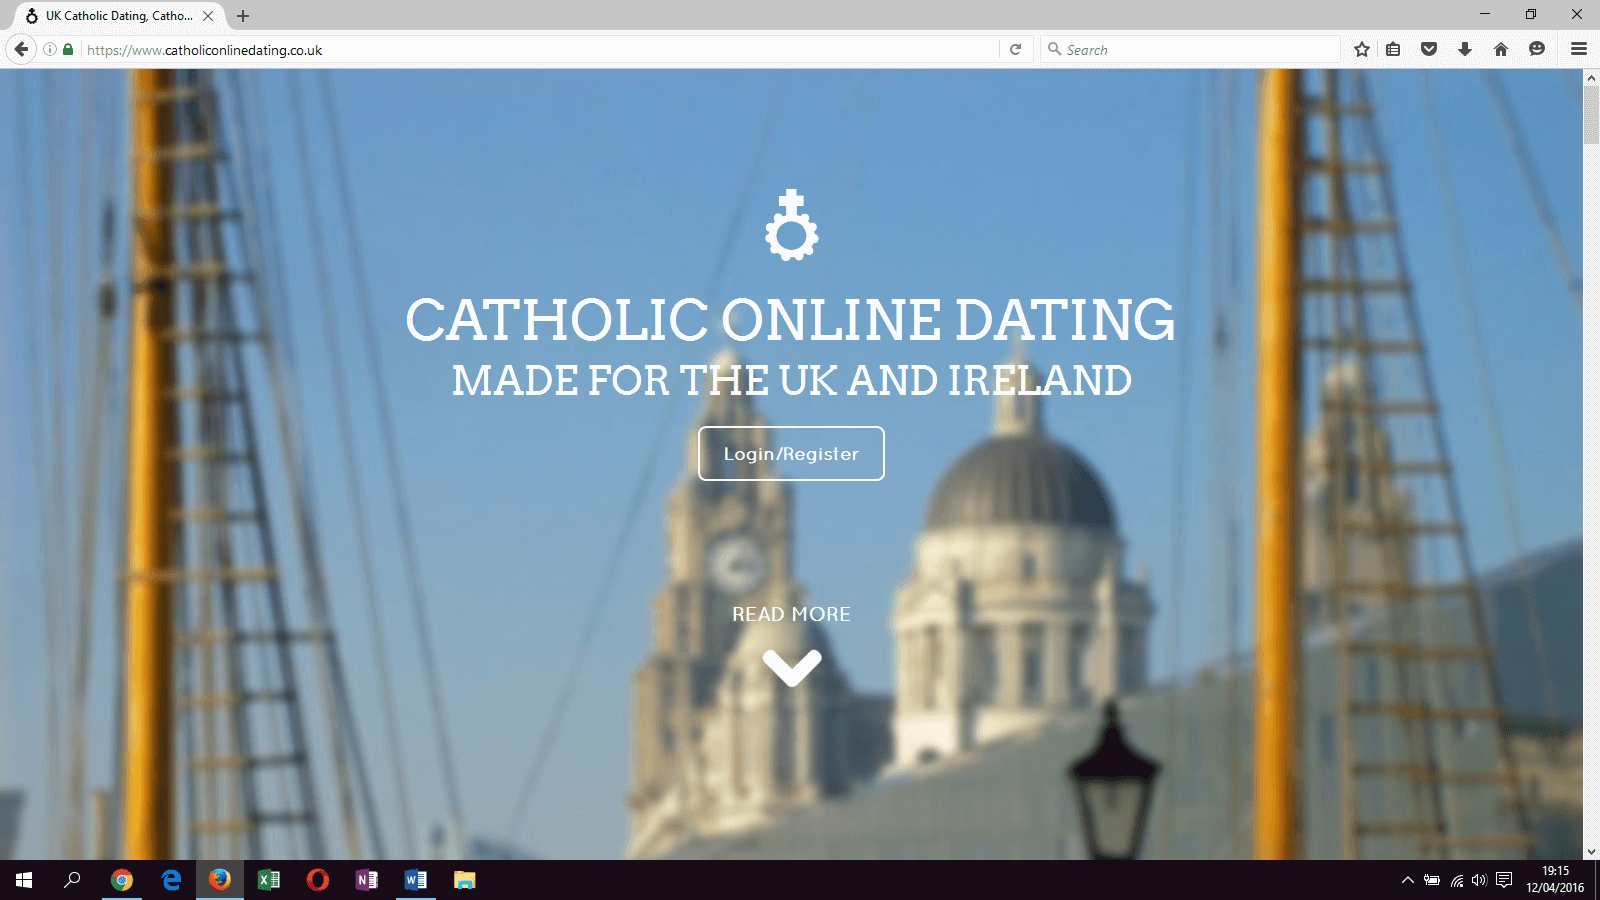 brierfield catholic single men How the catholic priesthood became  allowing more married men in the  for centuries the catholic church's model of relying on single, sexually.